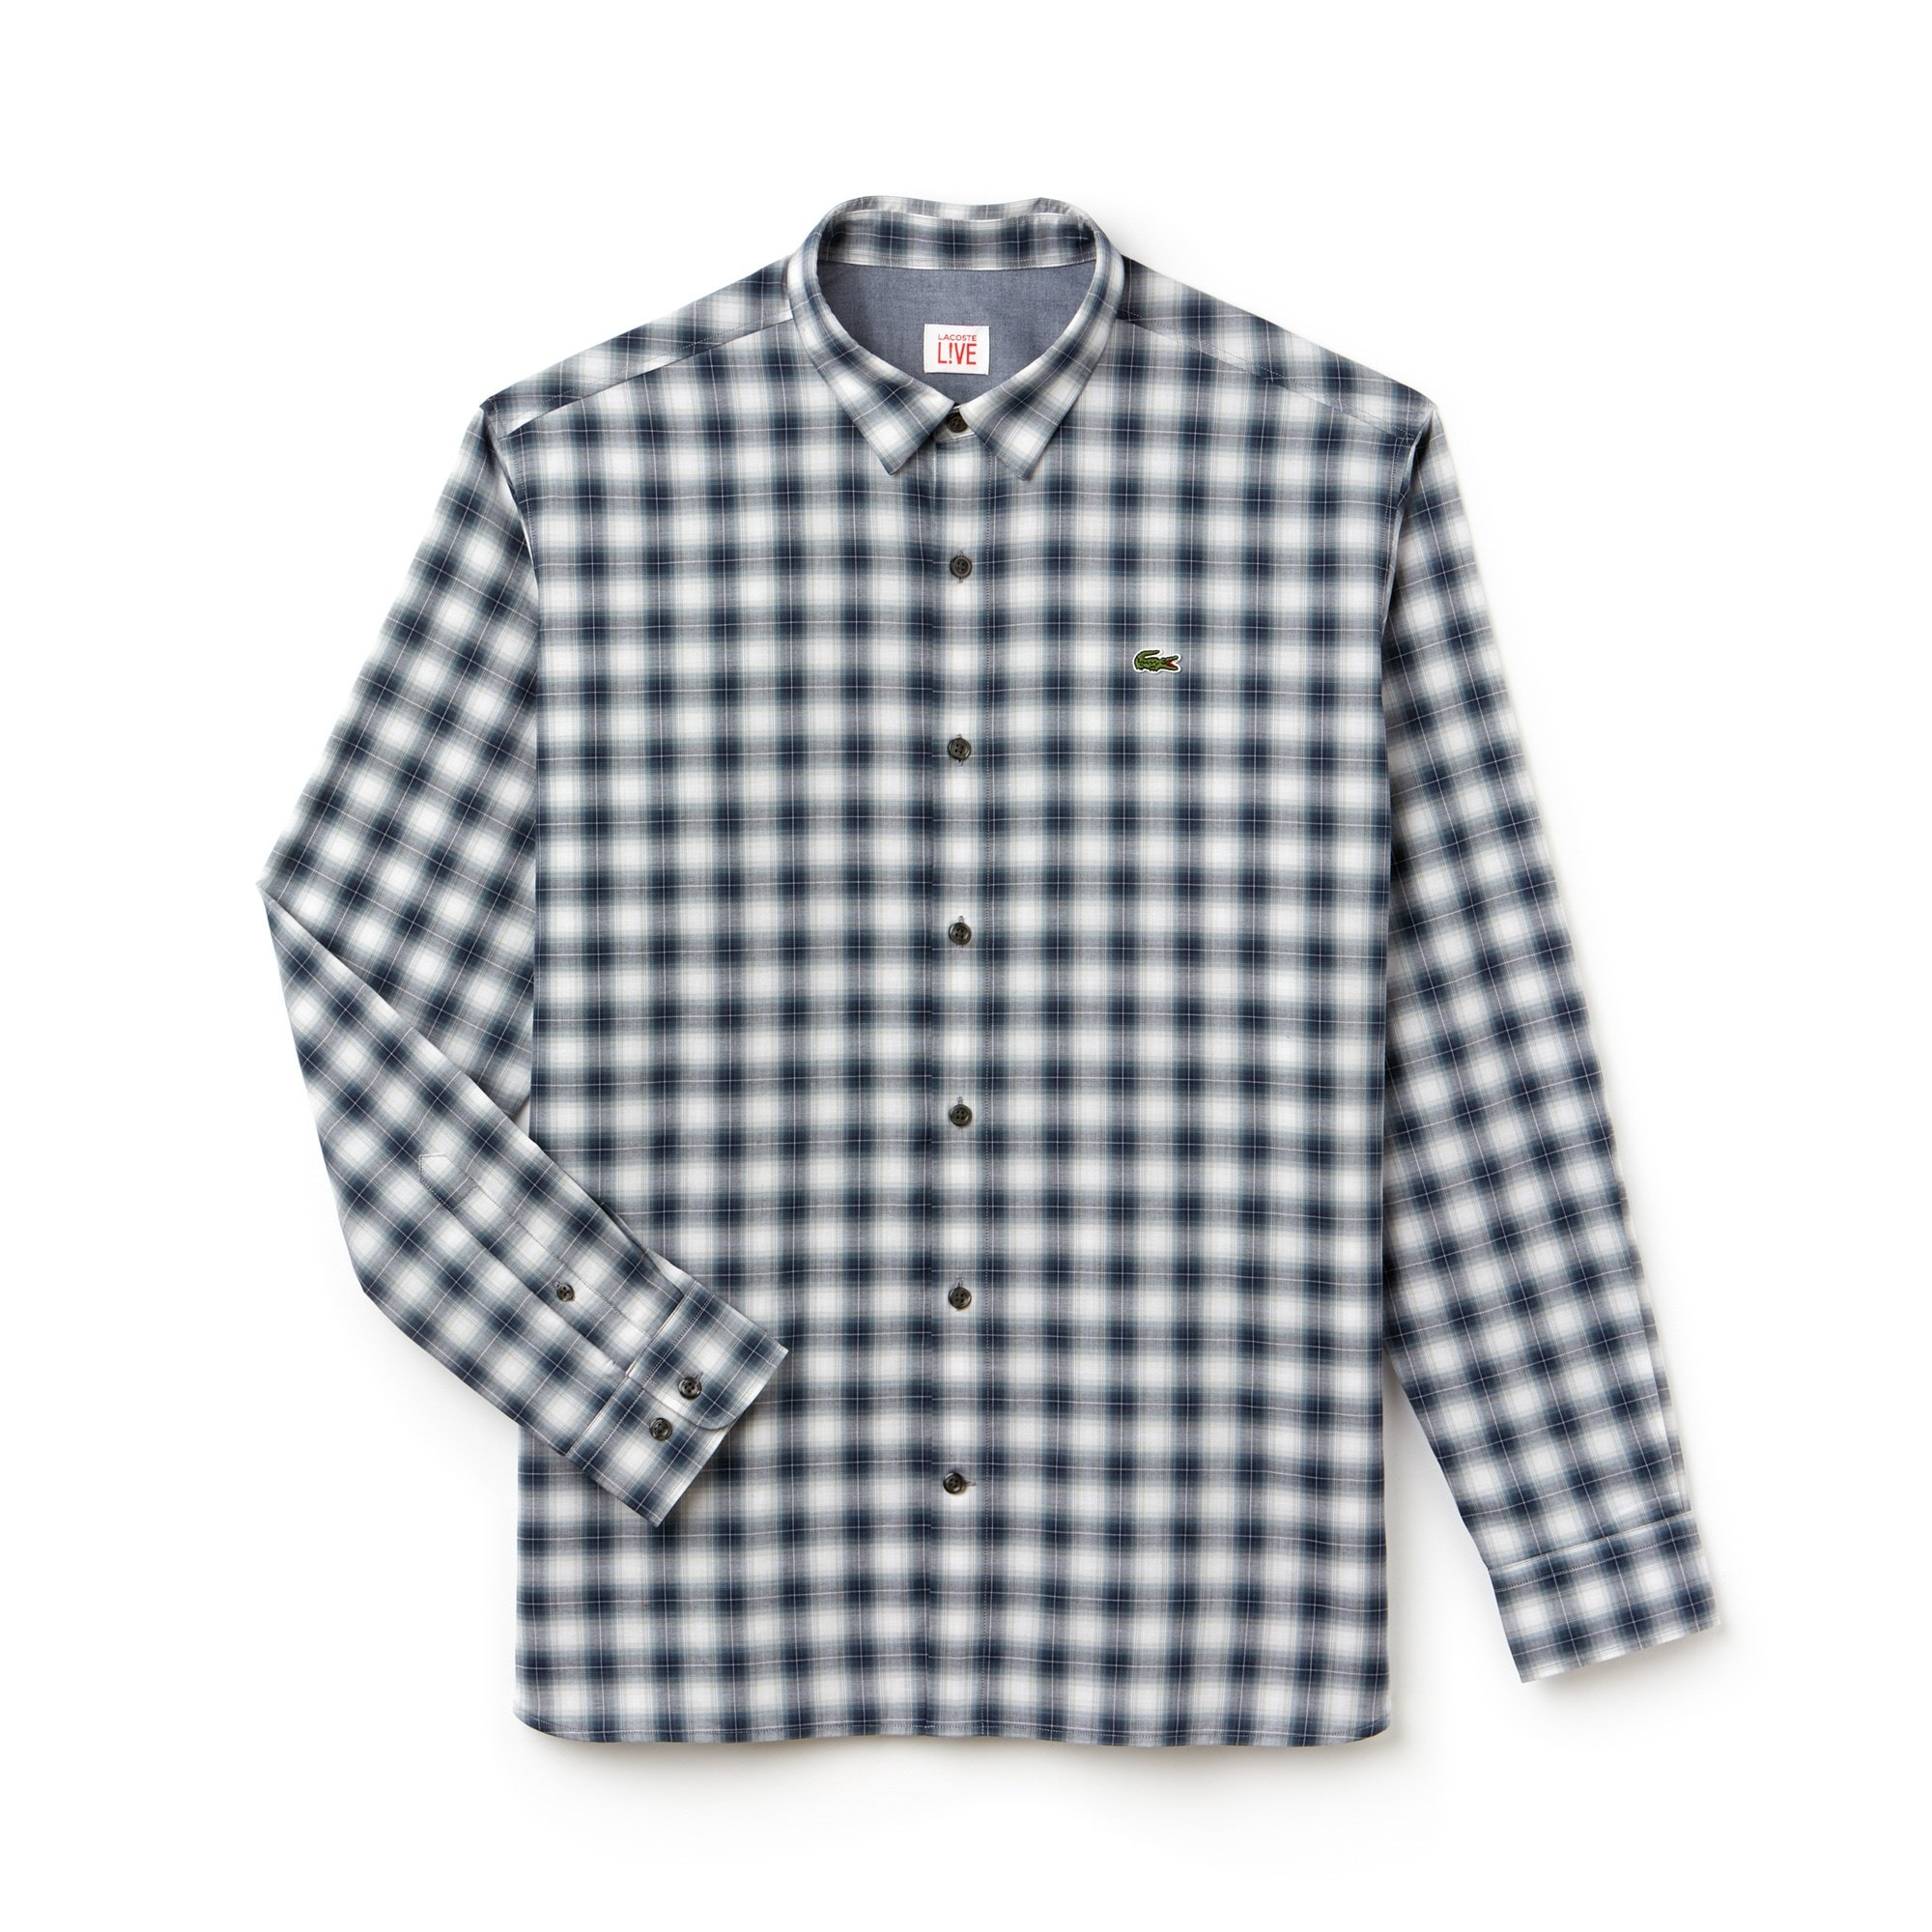 Men's Lacoste LIVE Boxy Fit Check Poplin Shirt